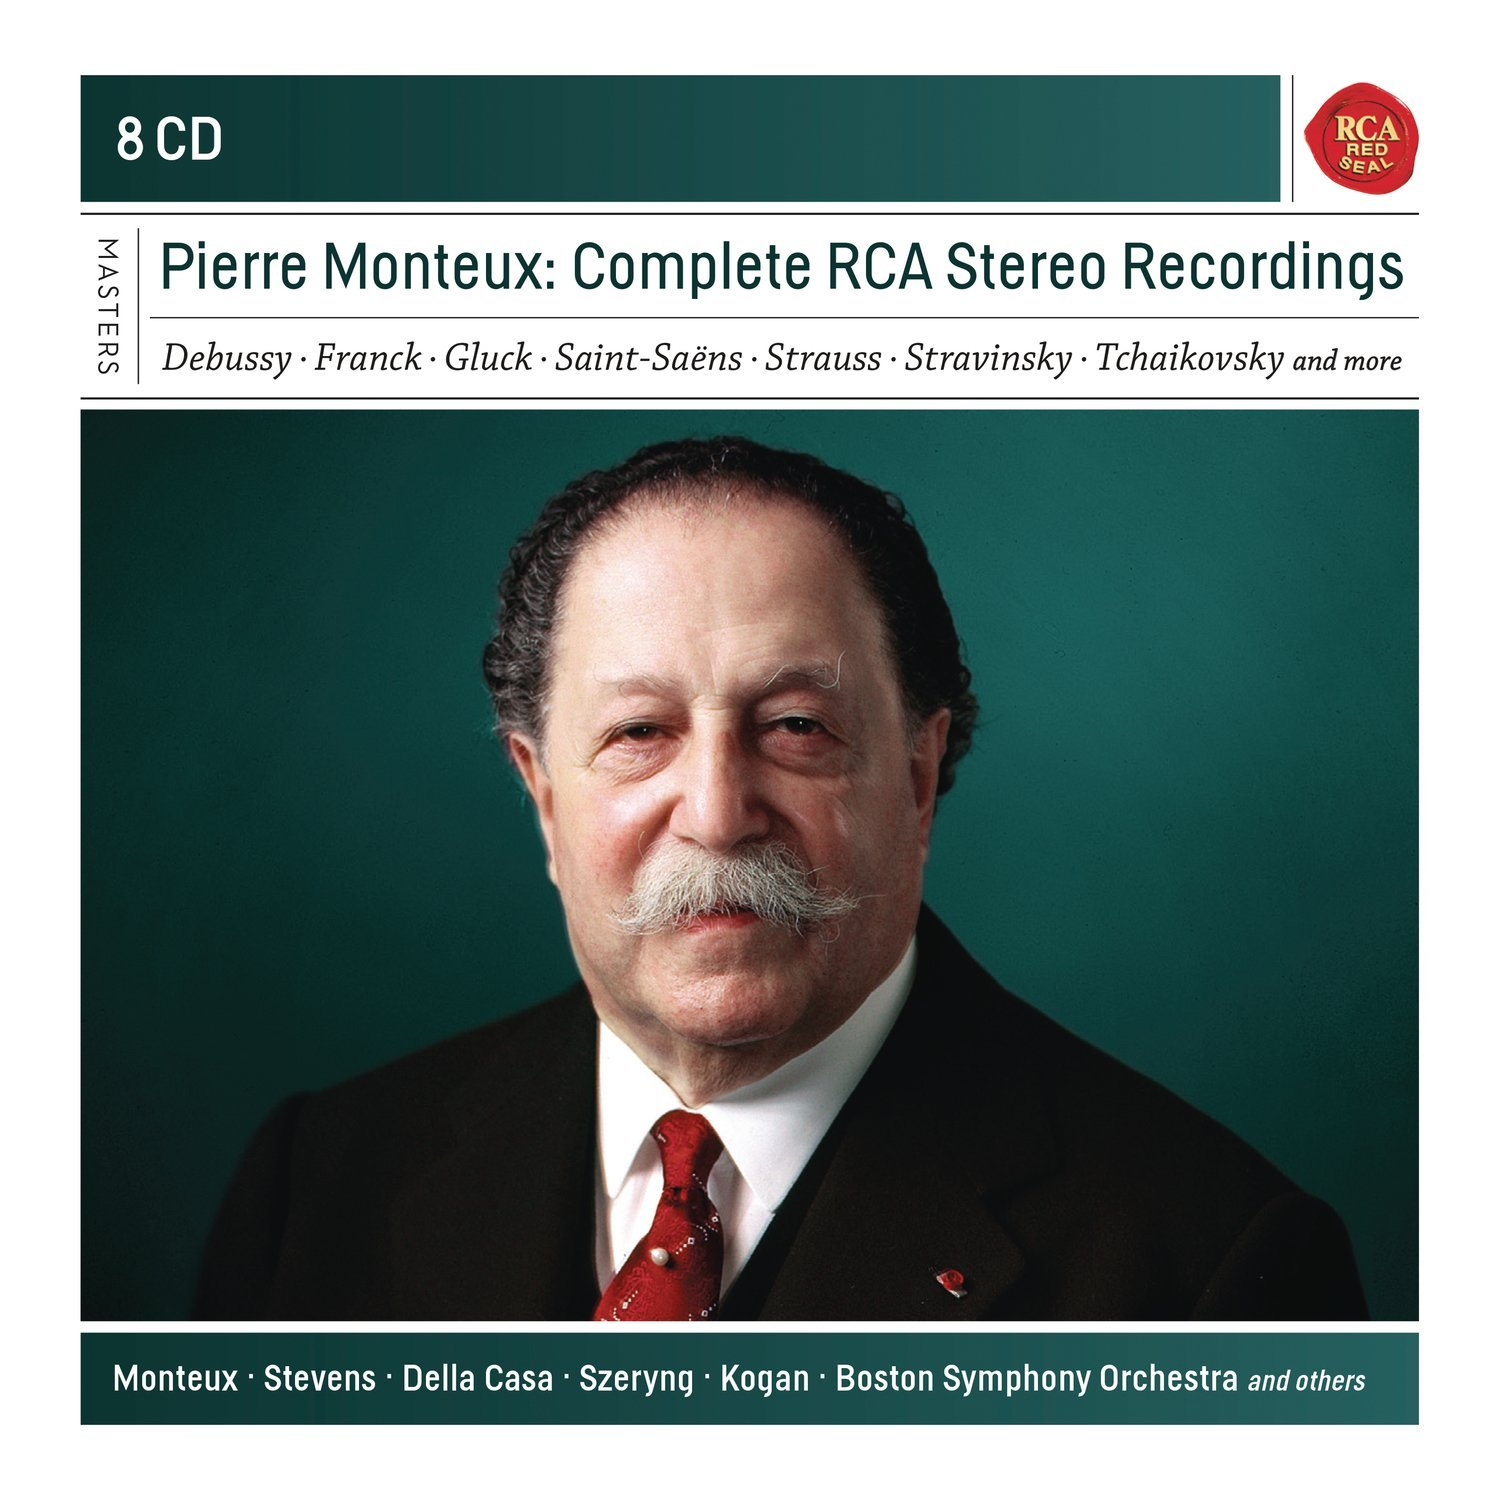 Pierre Monteux - The Complete RCA Stereo Recordings - CD